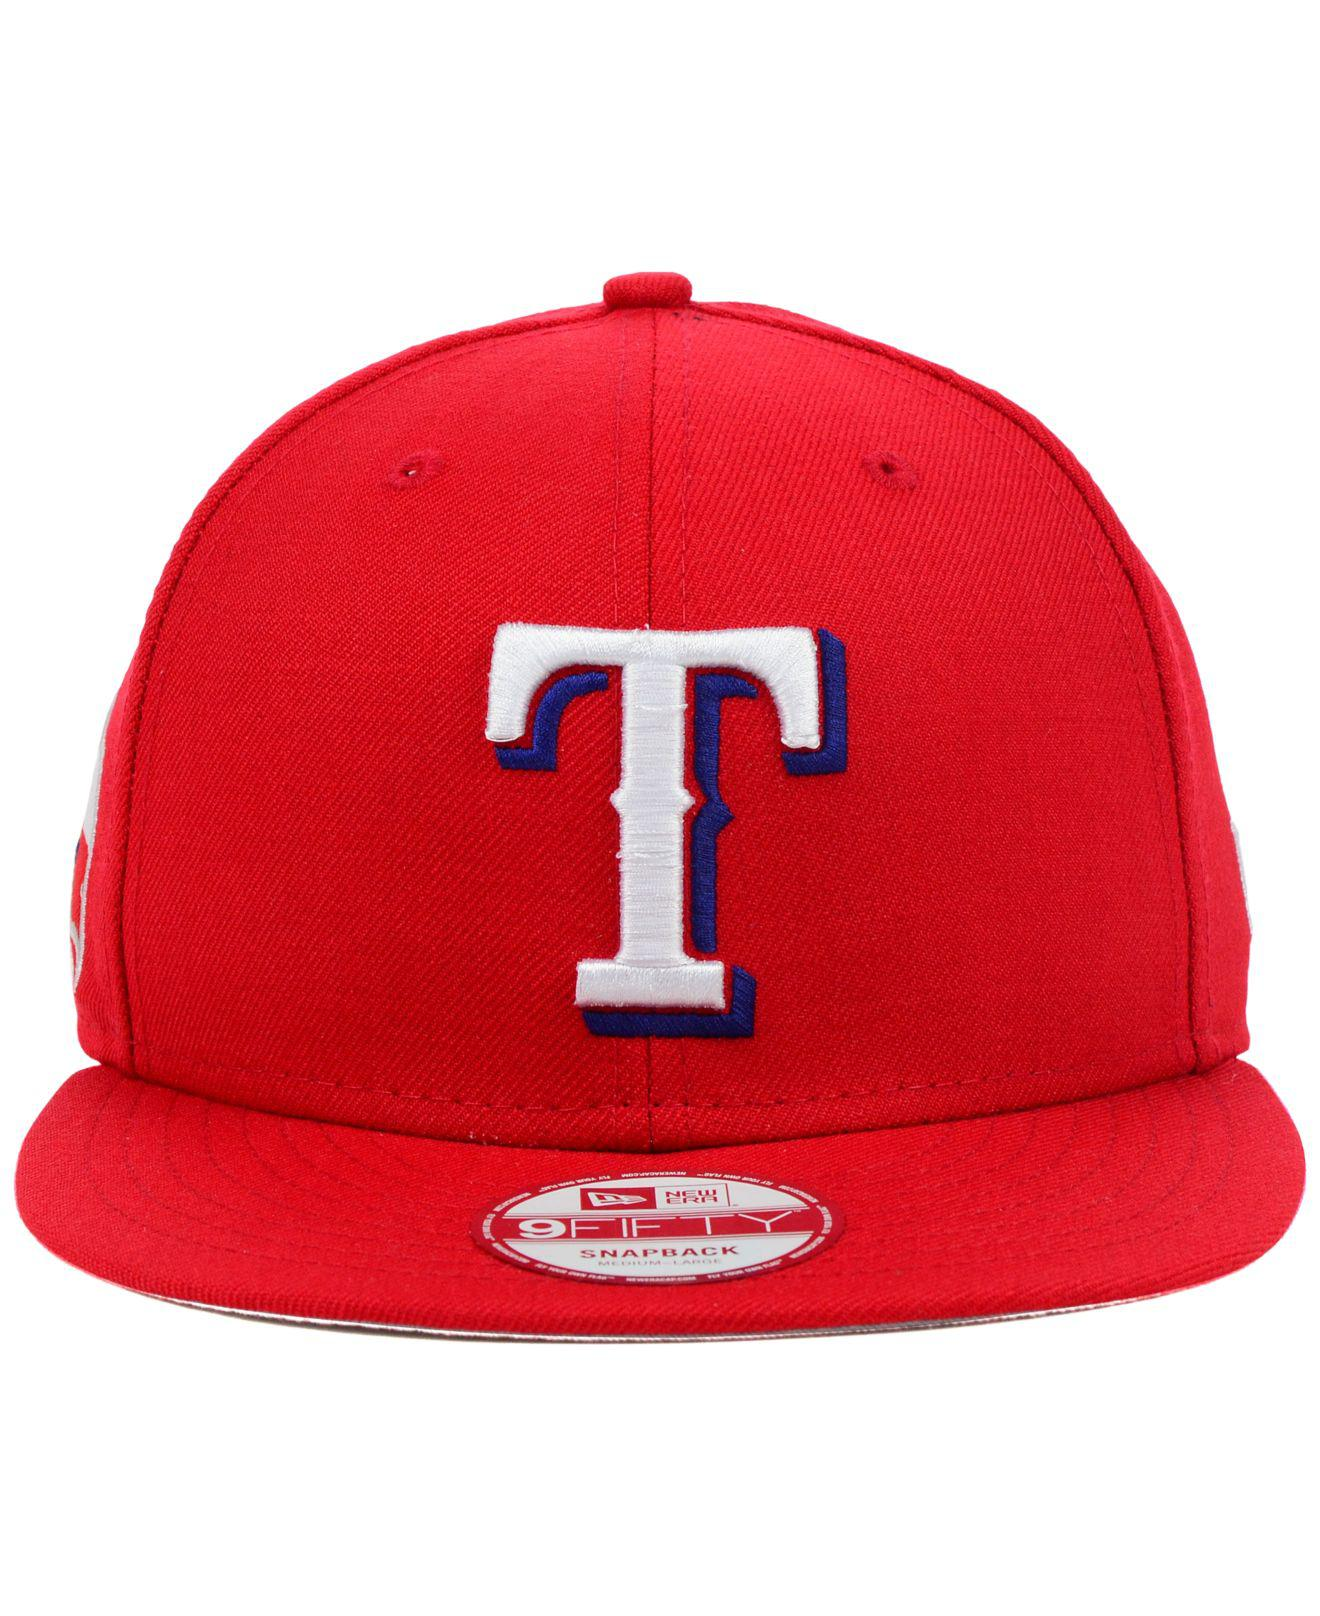 100% authentic a586e 2dc8a ... discount code for lyst ktz texas rangers mlb 2 tone link 9fifty  snapback cap in red